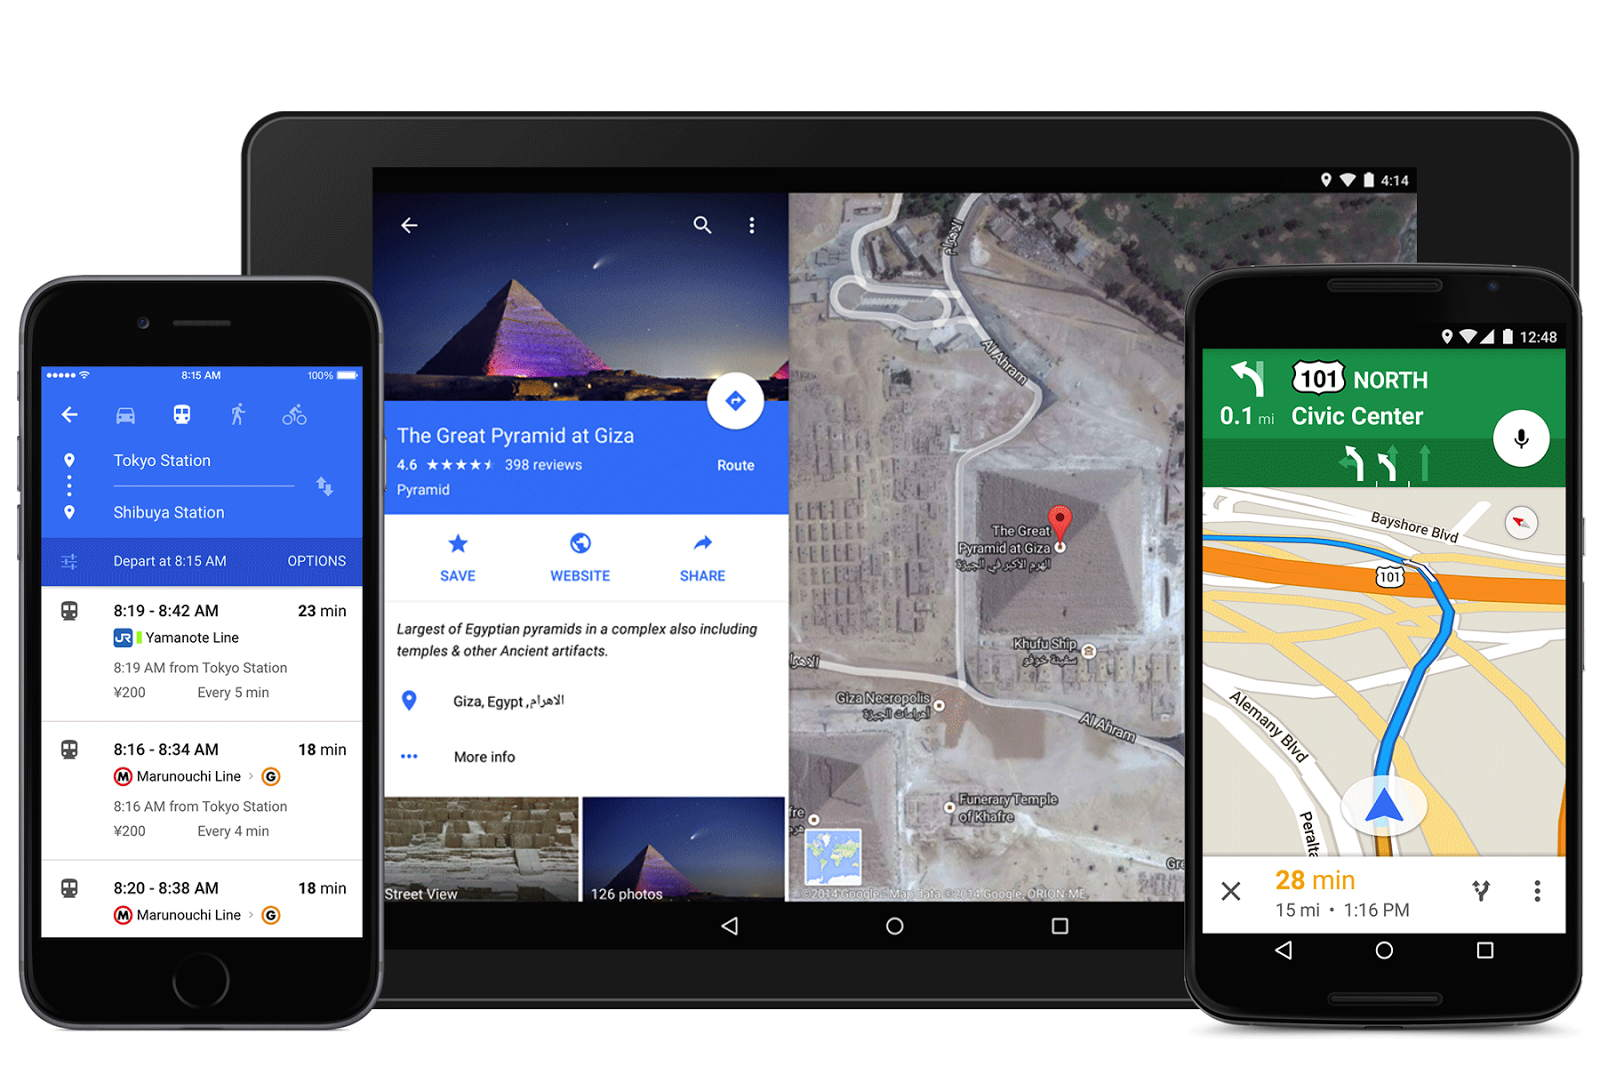 google-maps-9-screenshots-1.jpg (1600×1067)